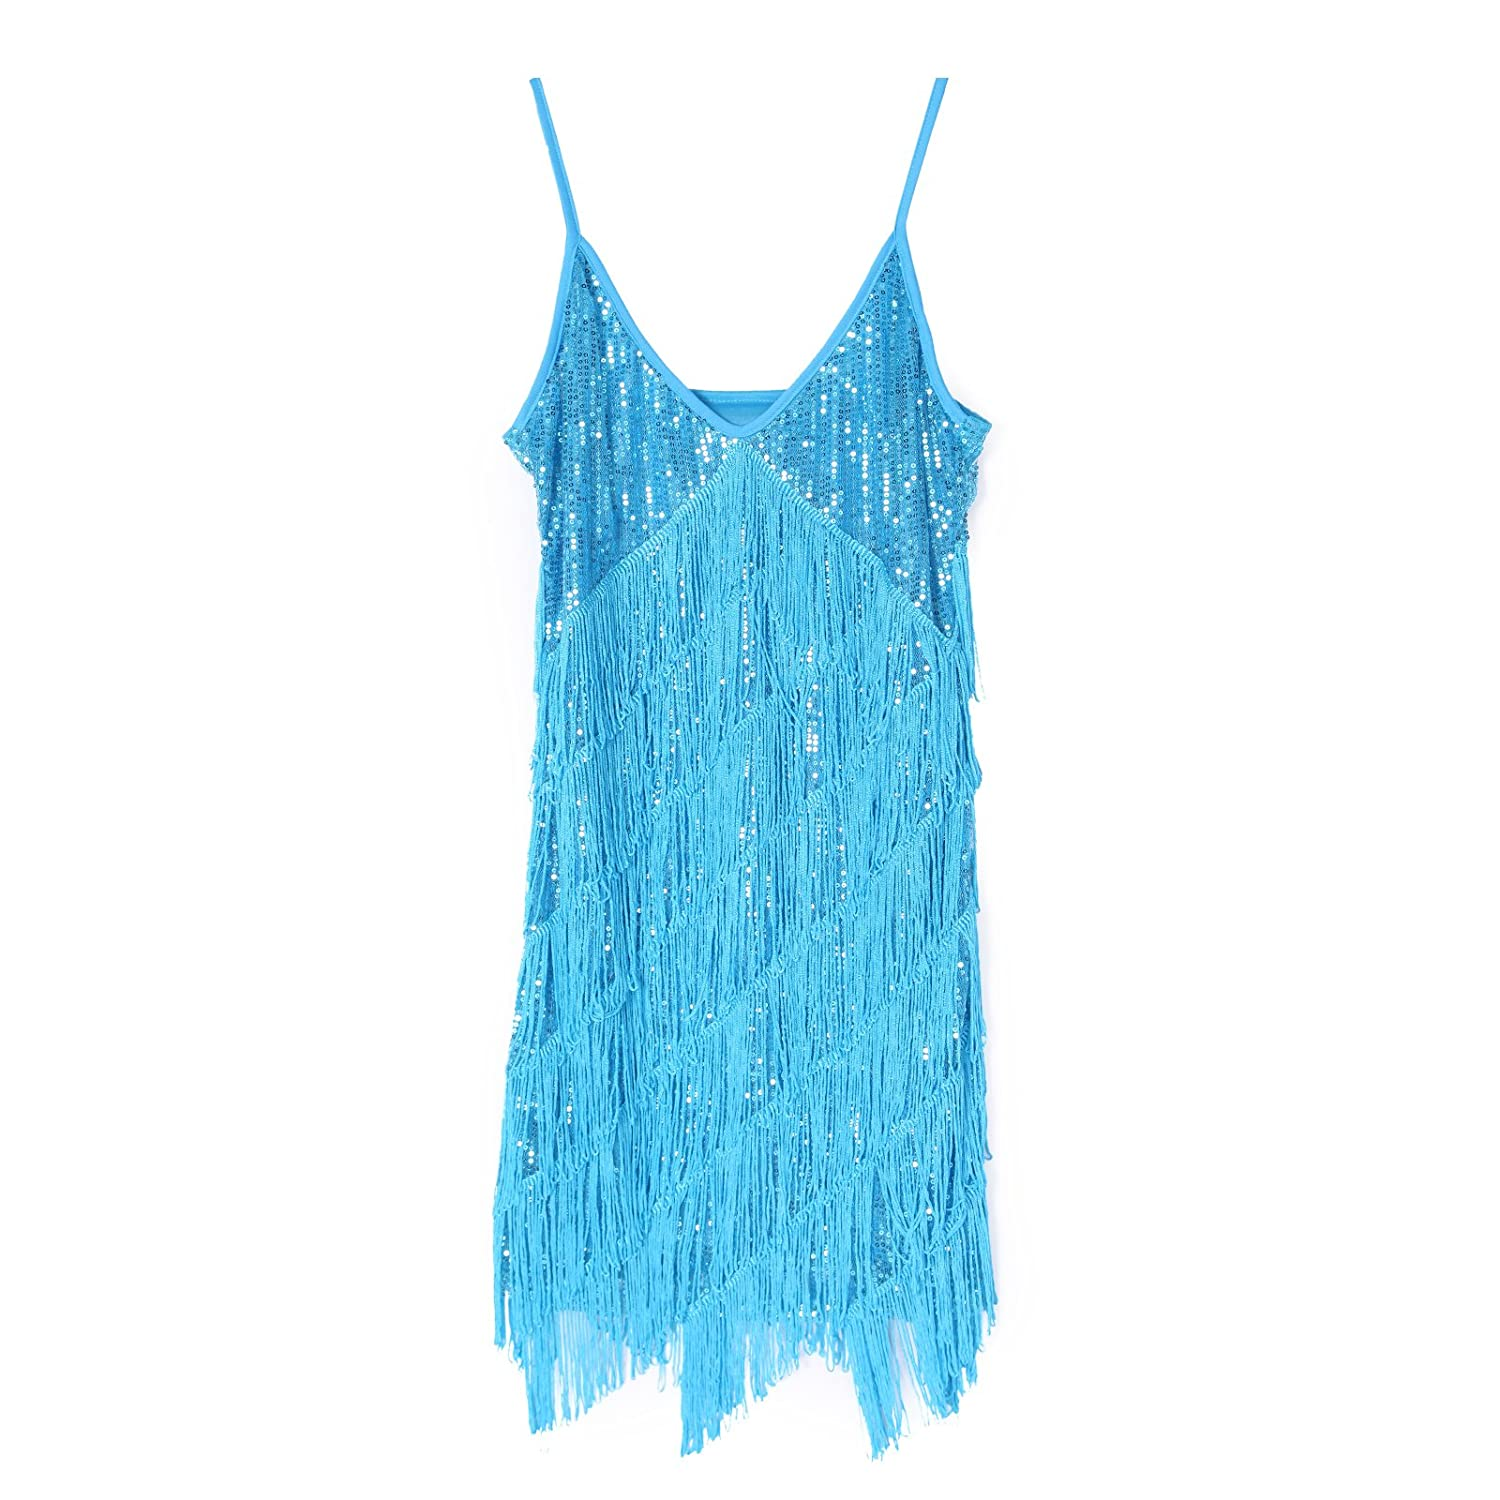 Amazon.com: Vintage 1920s Flapper Girl Sequin Fringed Cocktail Party ...